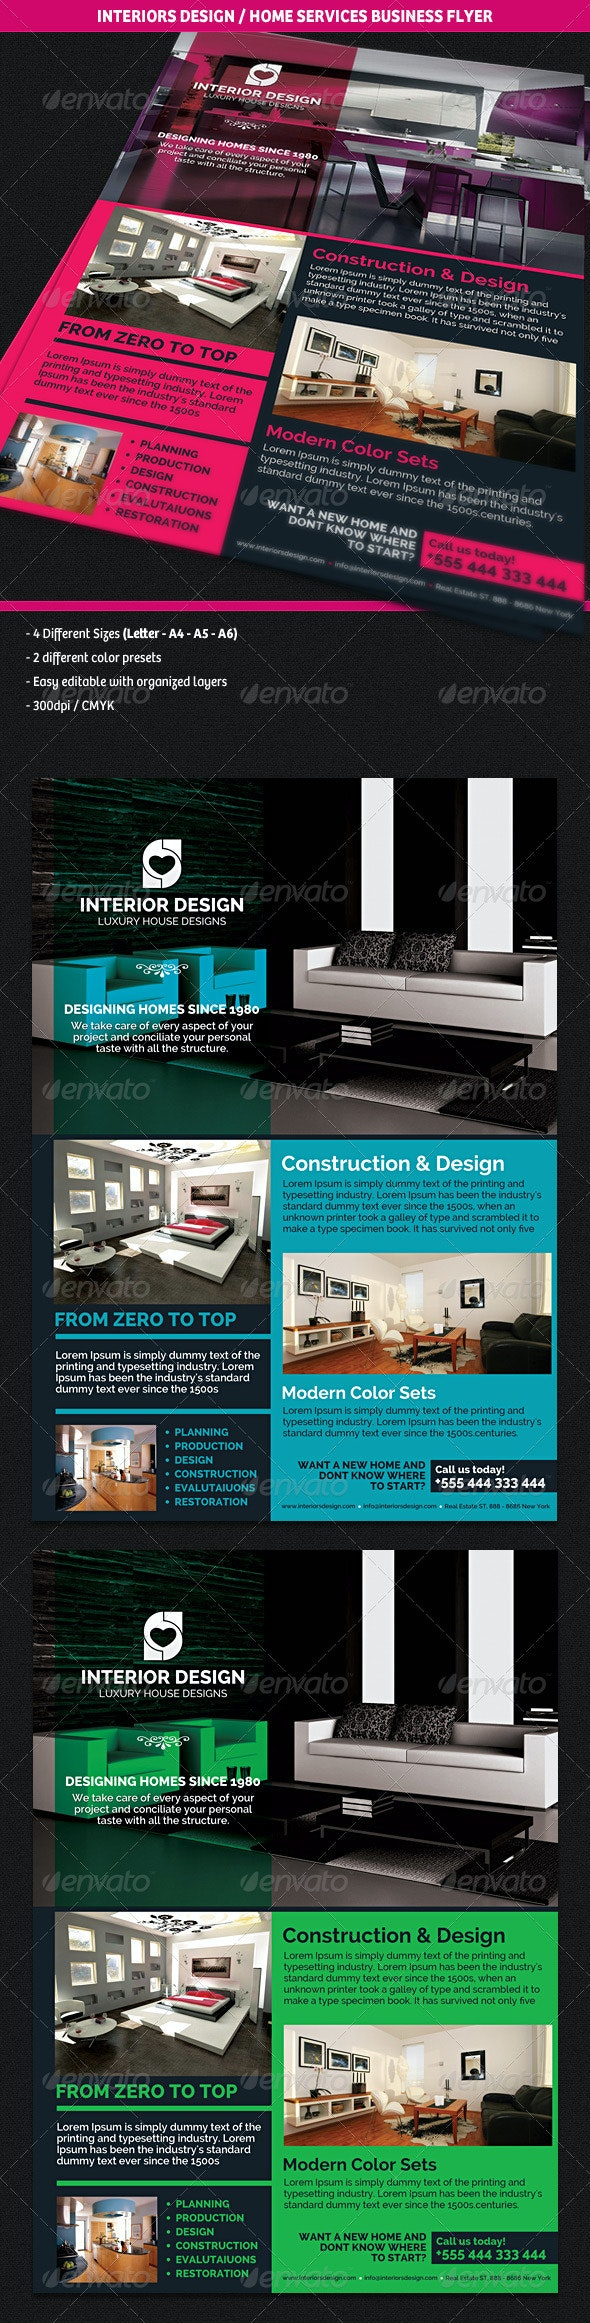 Interiors Design & Home Services Business Flyer - Corporate Flyers